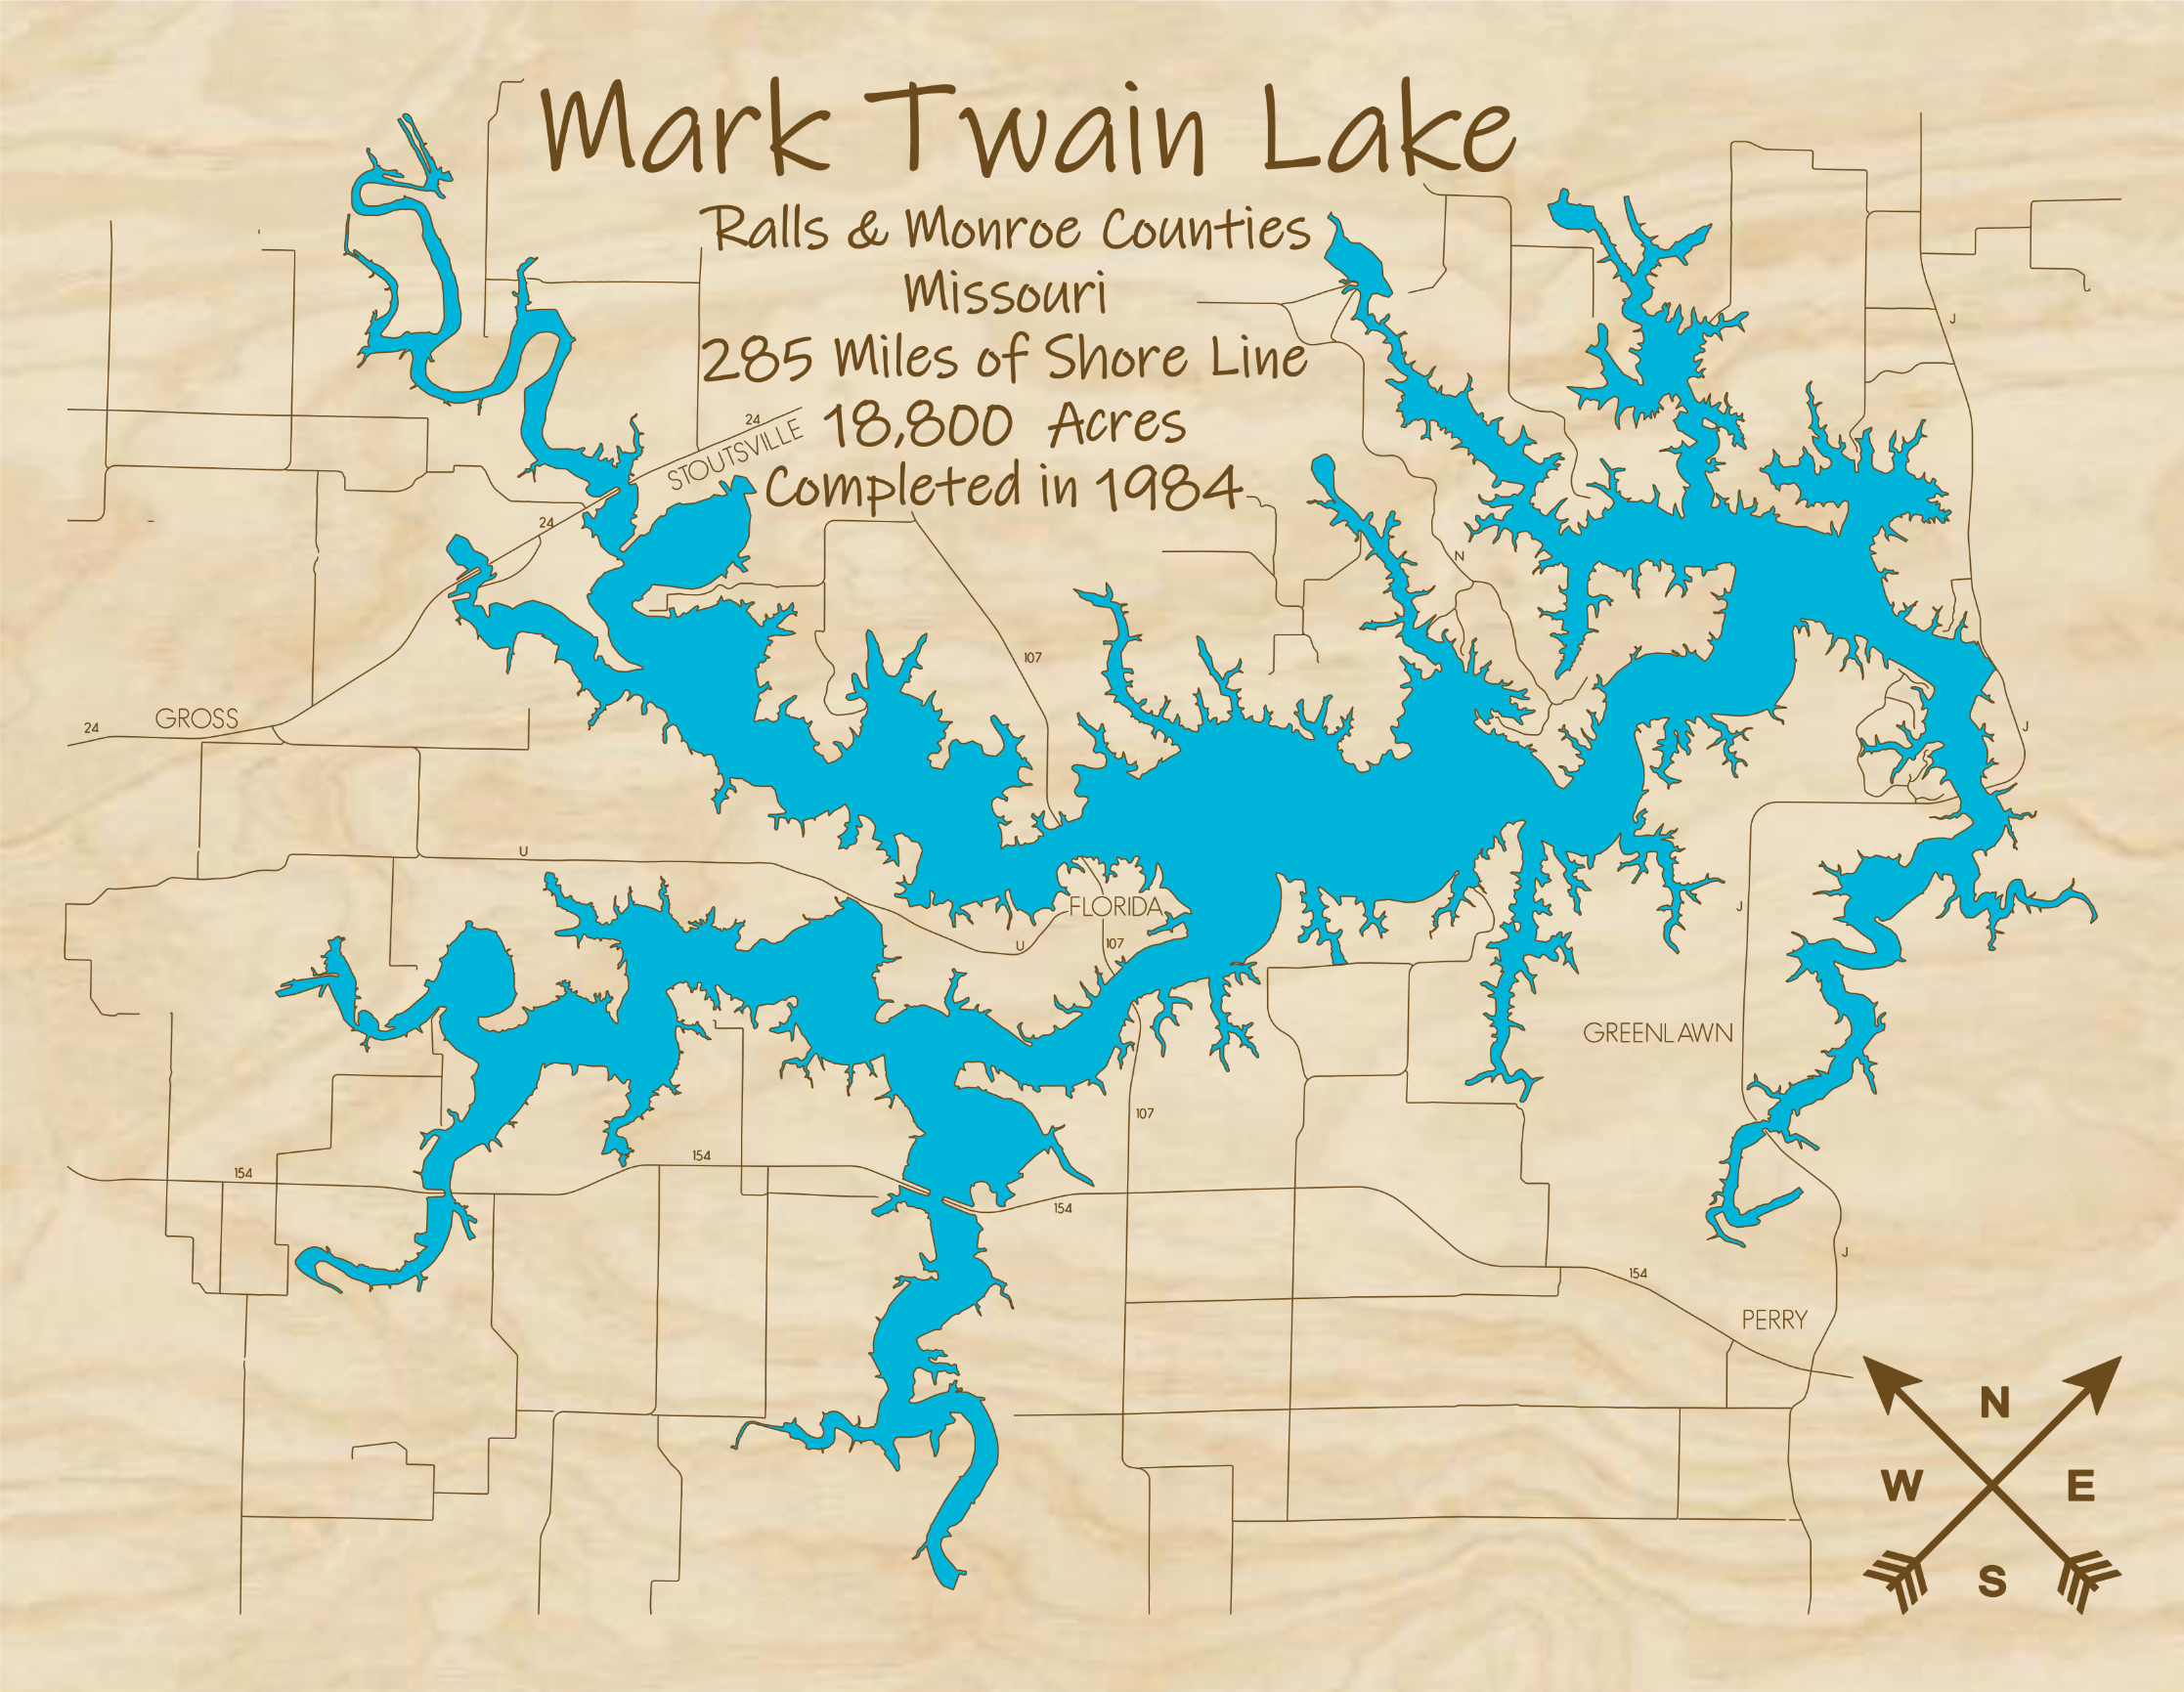 Mark Twain Lake Multi-layered Wood Lake Map